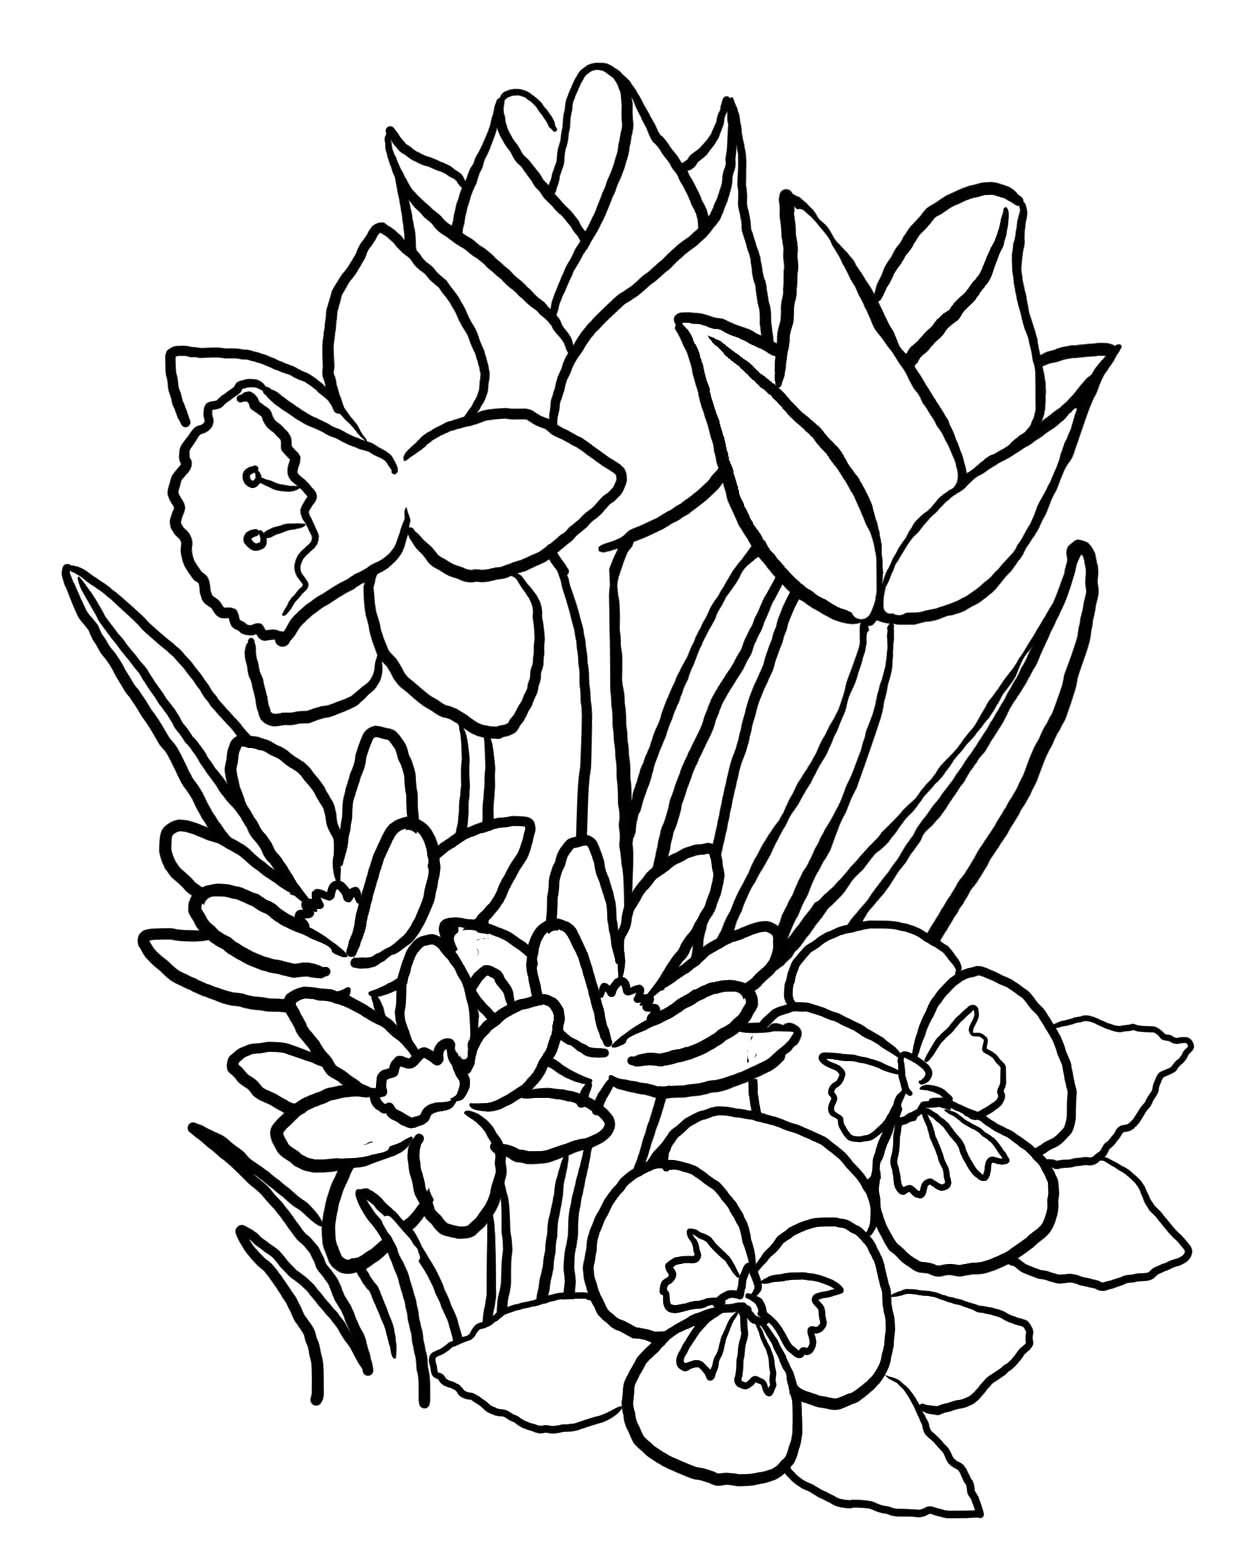 free printable flower coloring pages free printable flower coloring pages for kids best free flower printable pages coloring